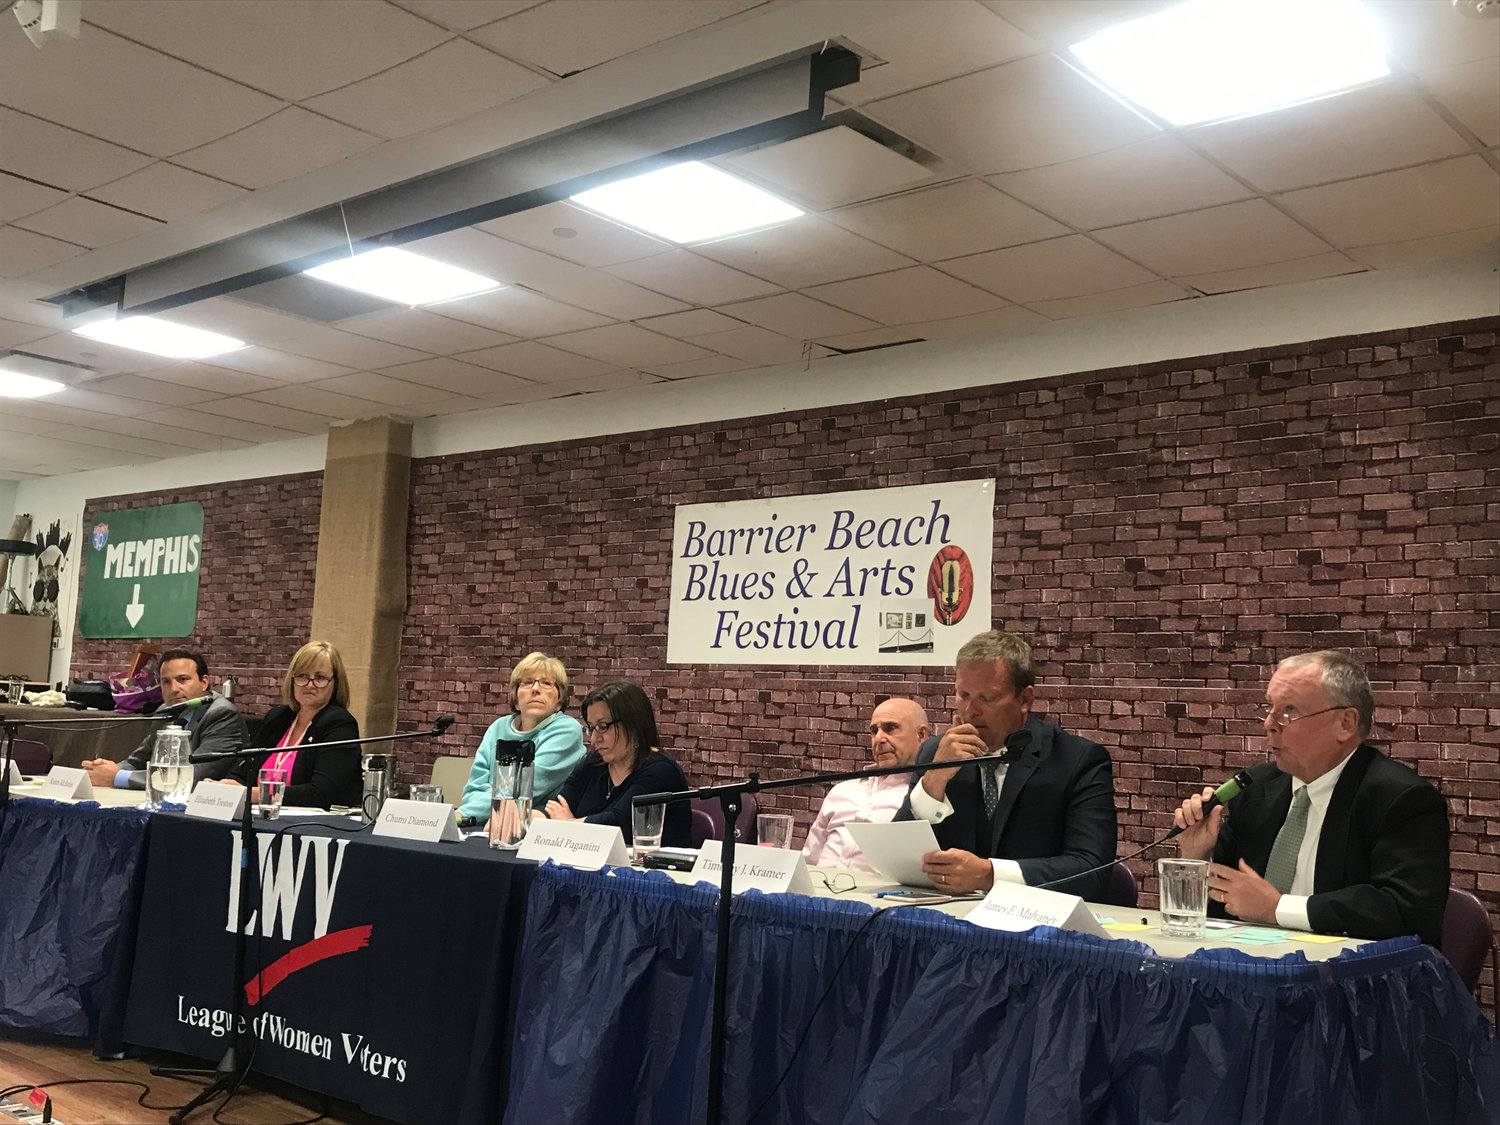 Seven candidates running in the June 25 Democratic primary fielded written questions at the June 12 candidates forum.